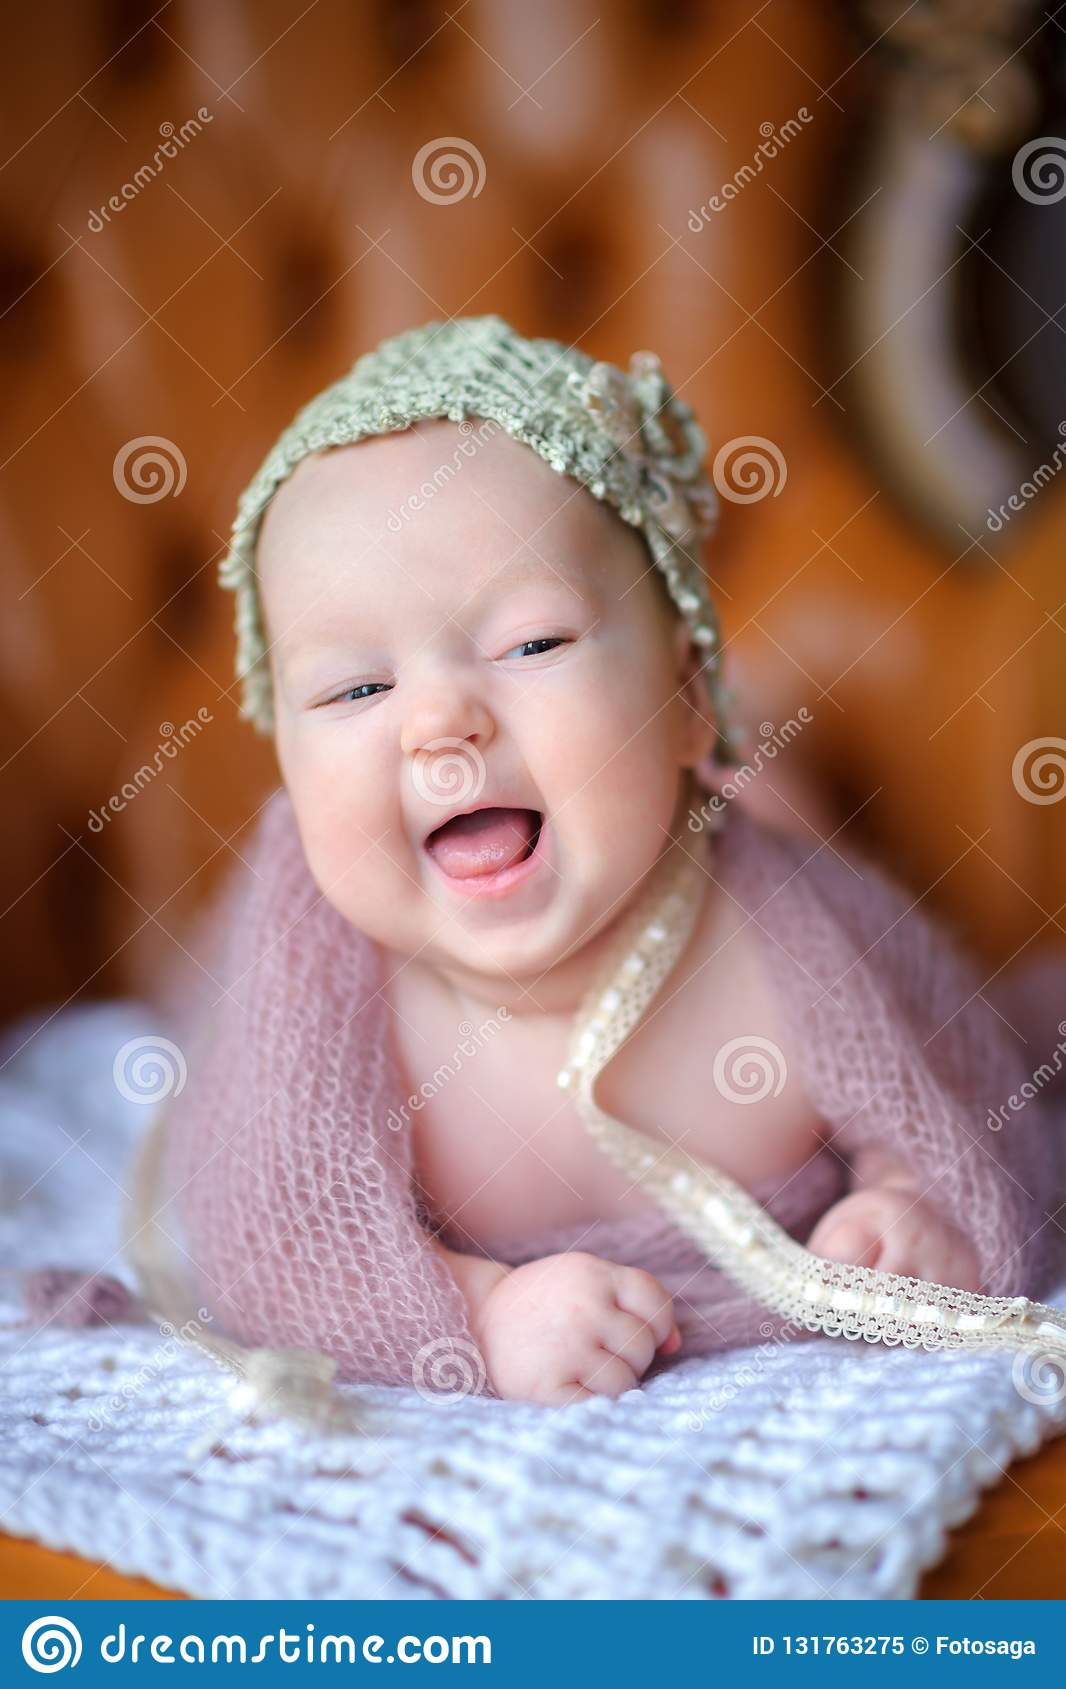 Newborn baby in a beautiful knitted hat